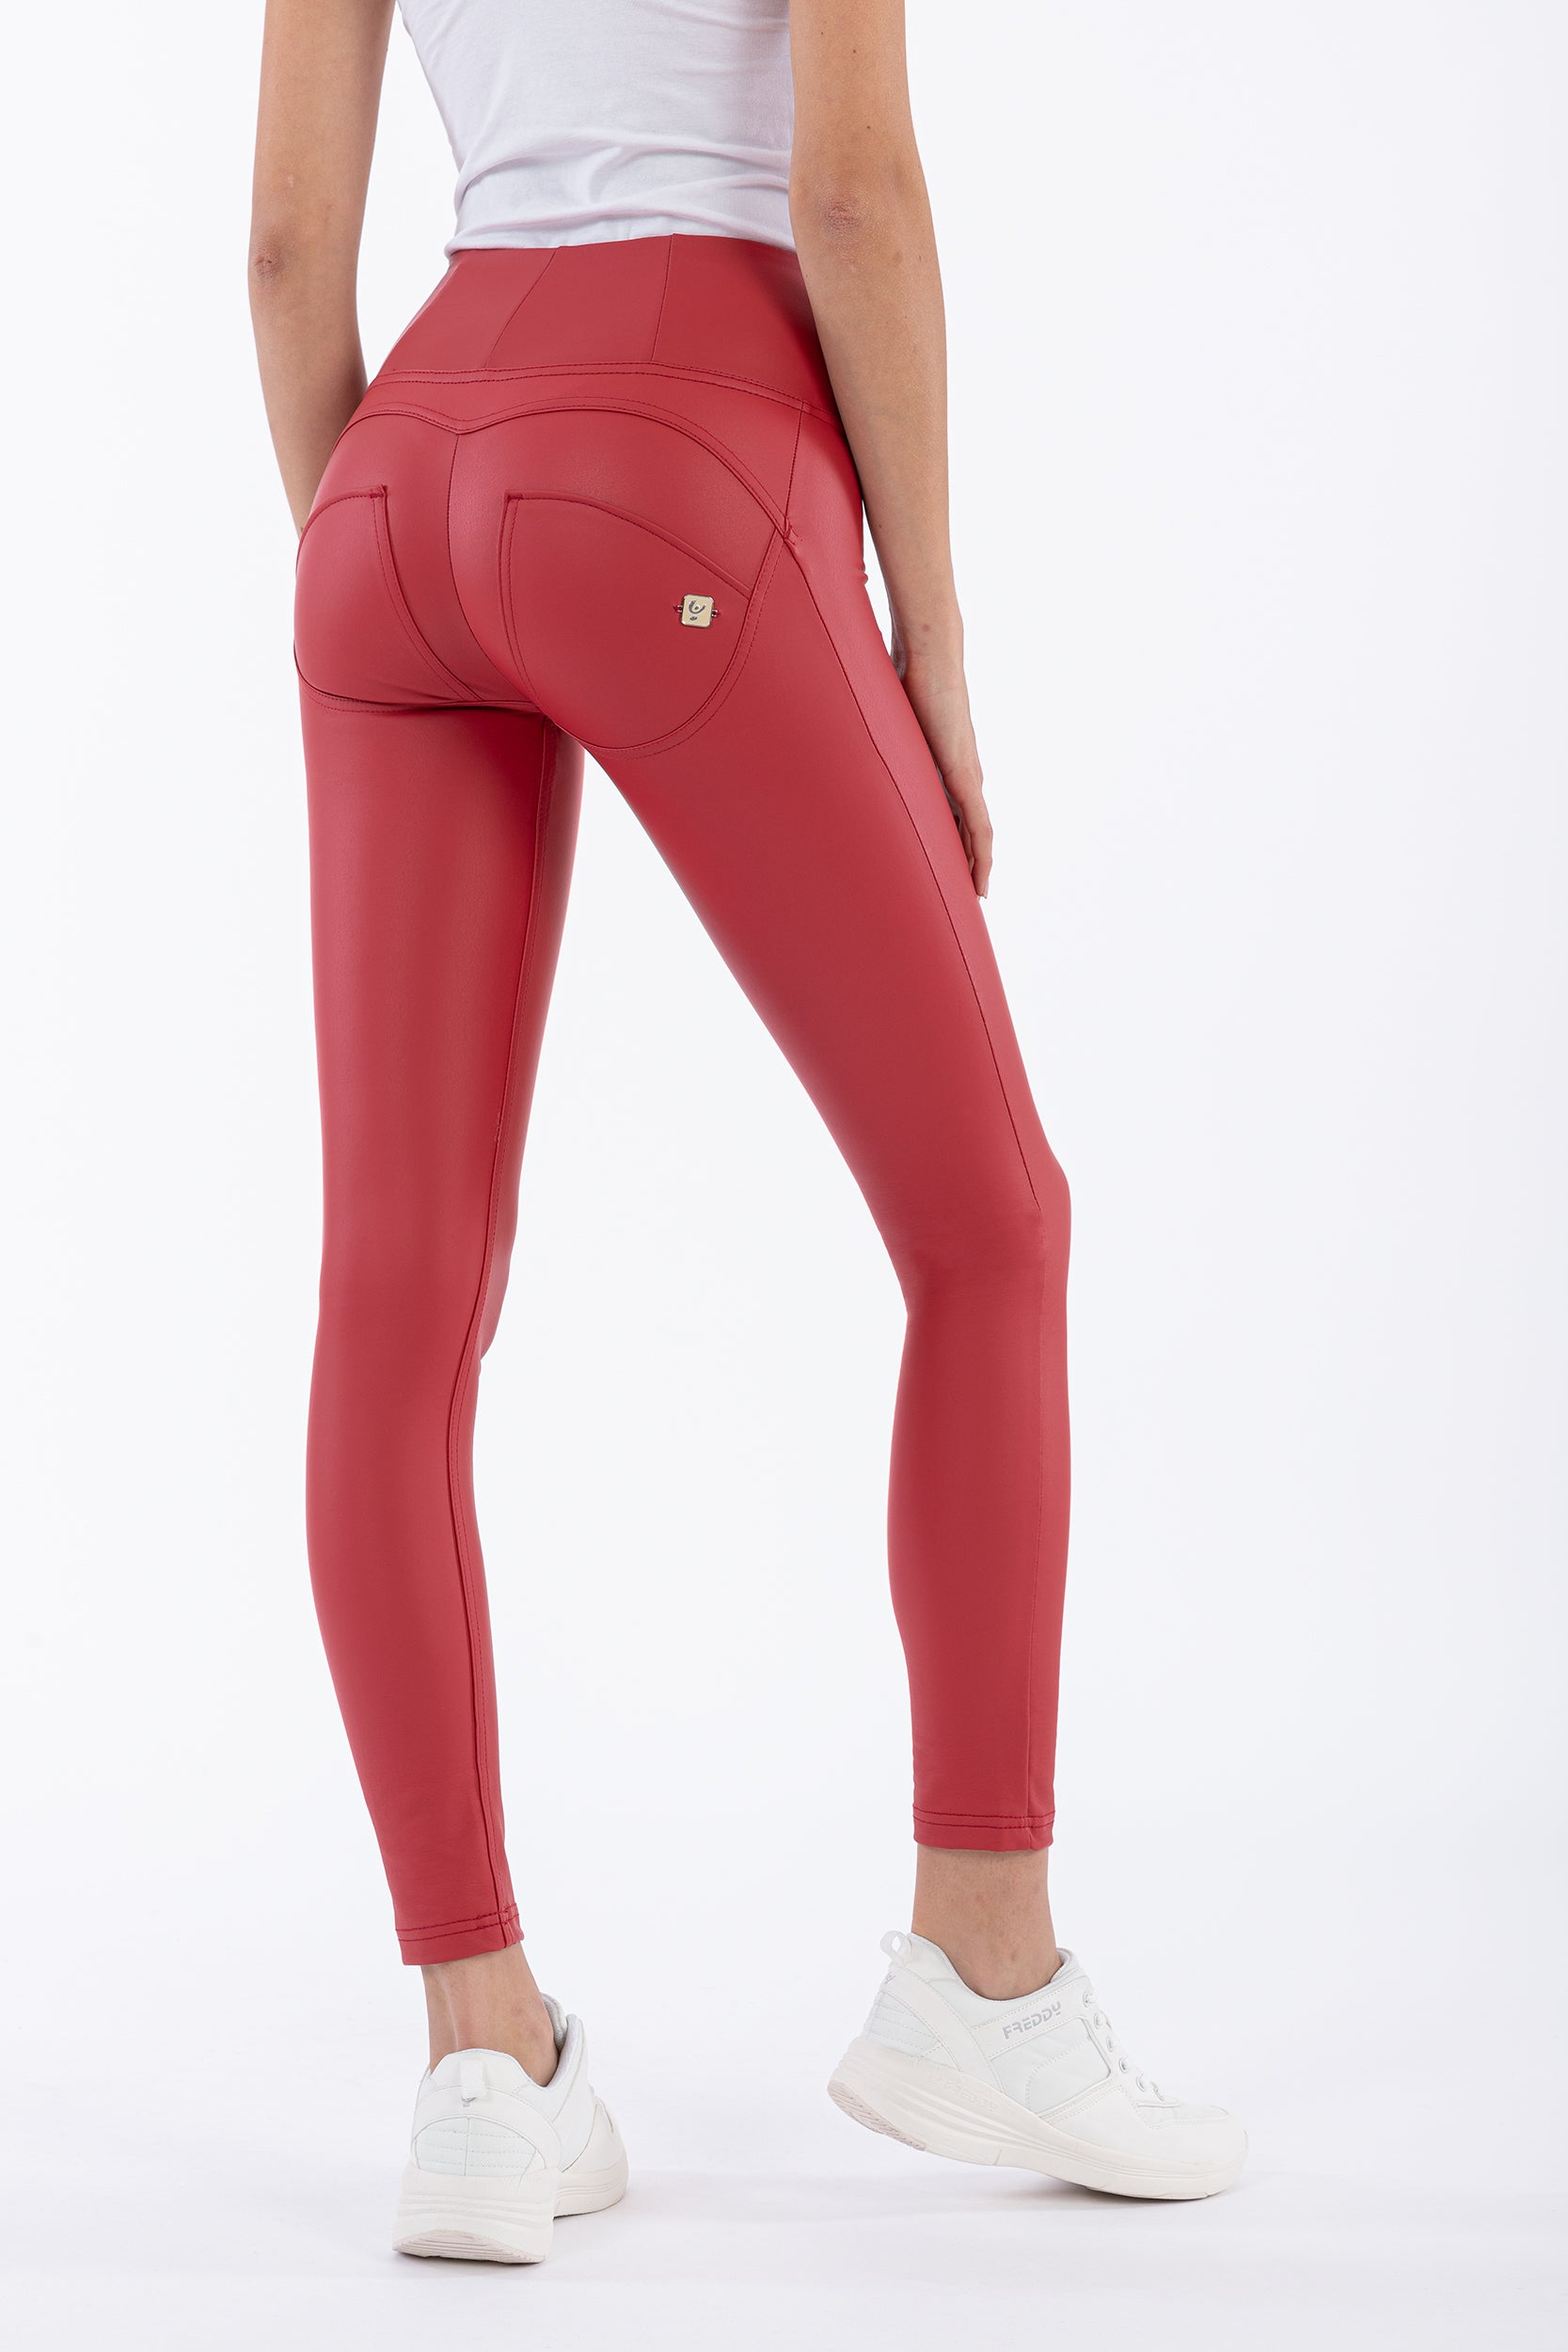 ANKLE LEG RED LEATHER HIGH RISE SELF TONE ZIP